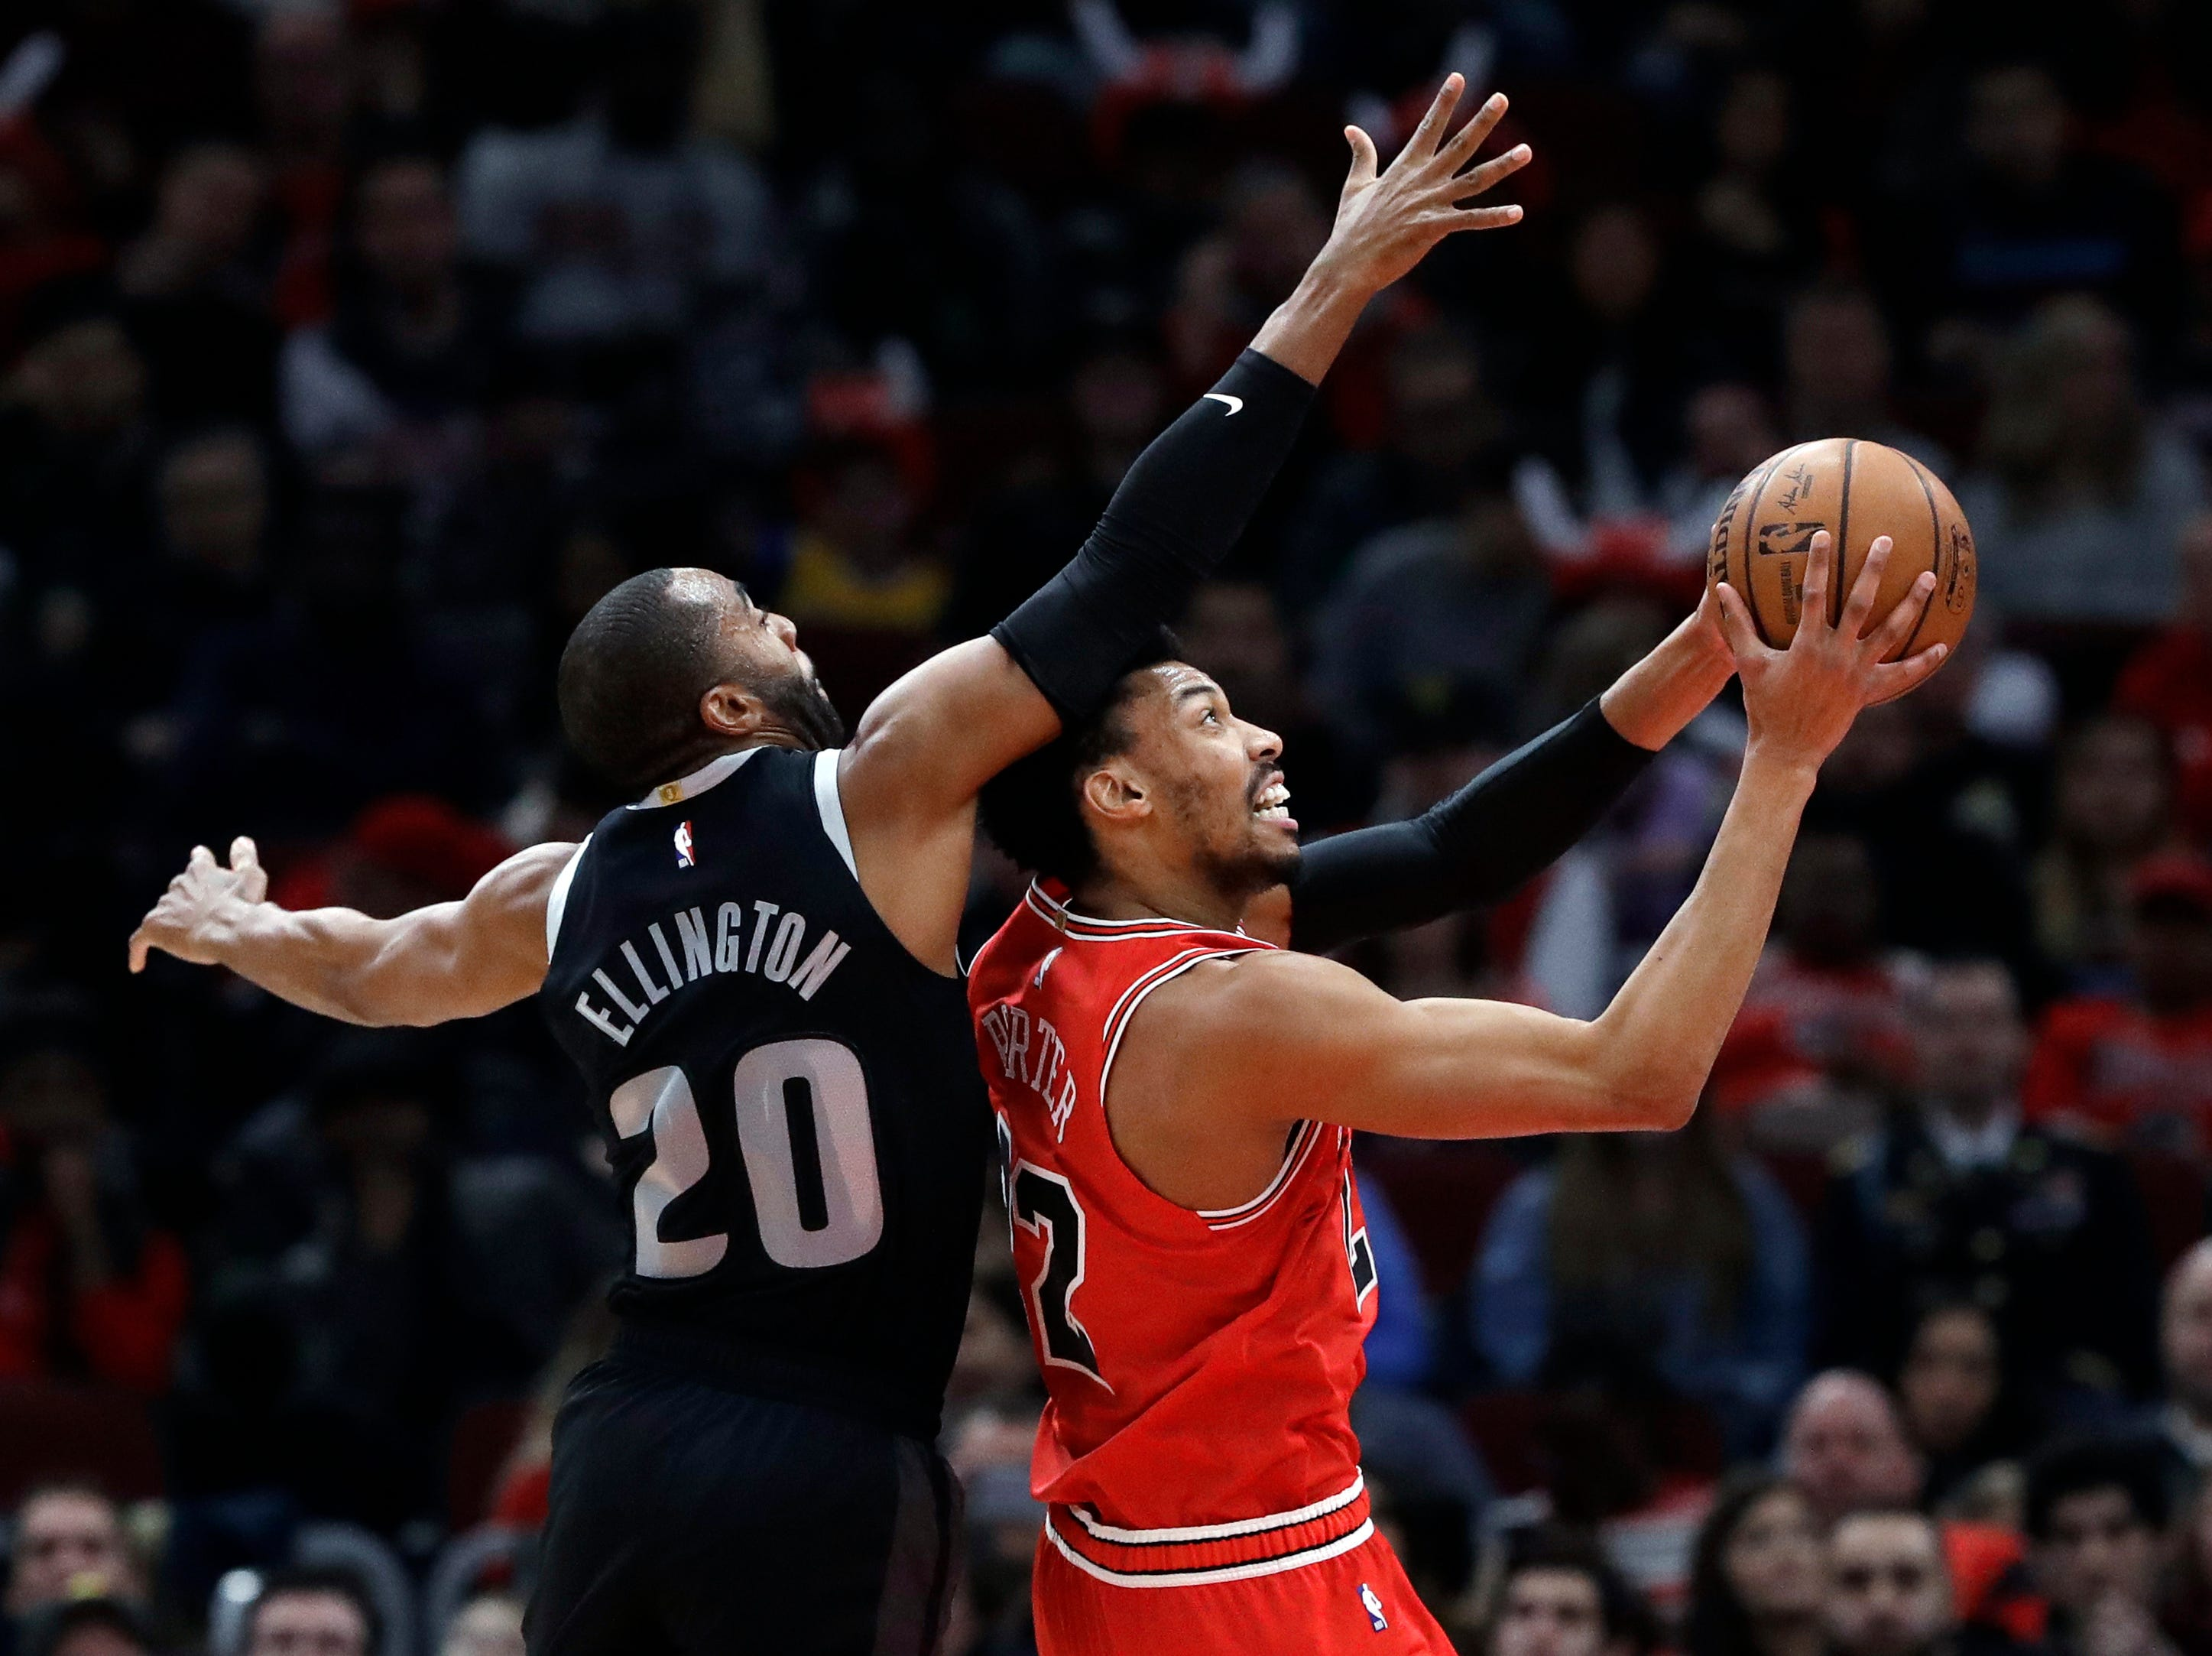 Chicago Bulls forward Otto Porter Jr., right, shoots as Detroit Pistons guard Wayne Ellington guards during the first half of an NBA basketball game.